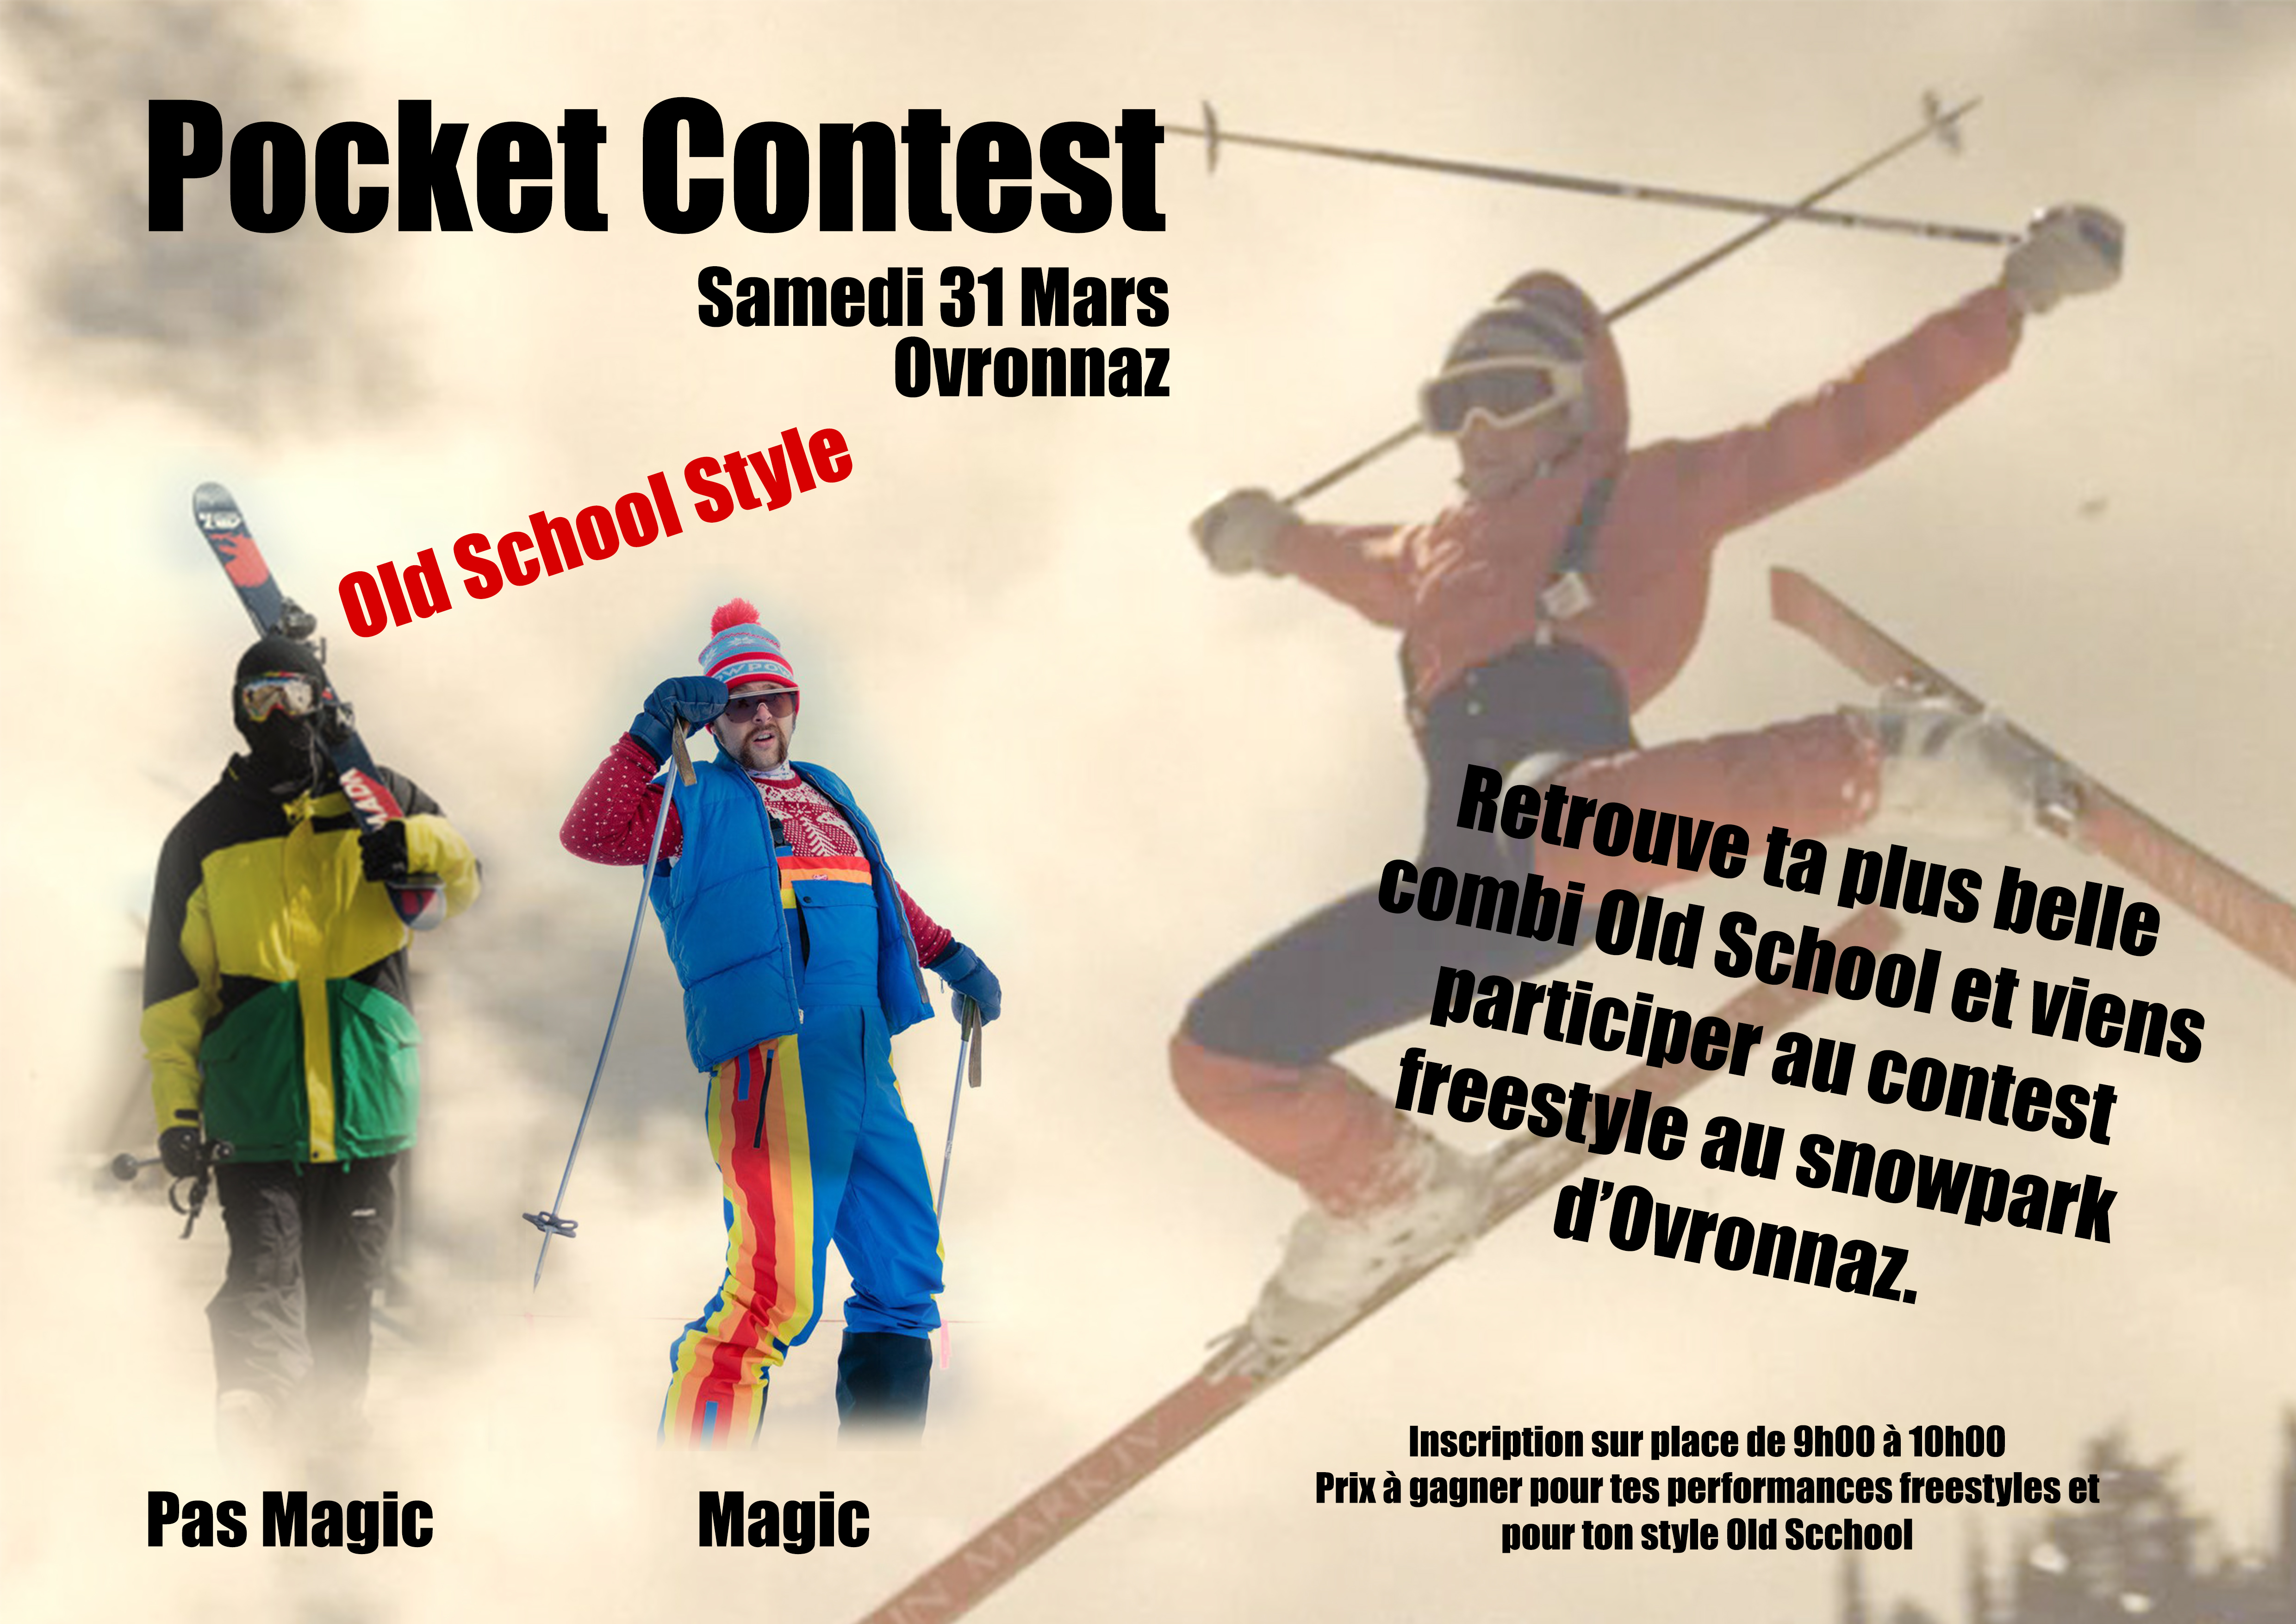 Pocket Contest